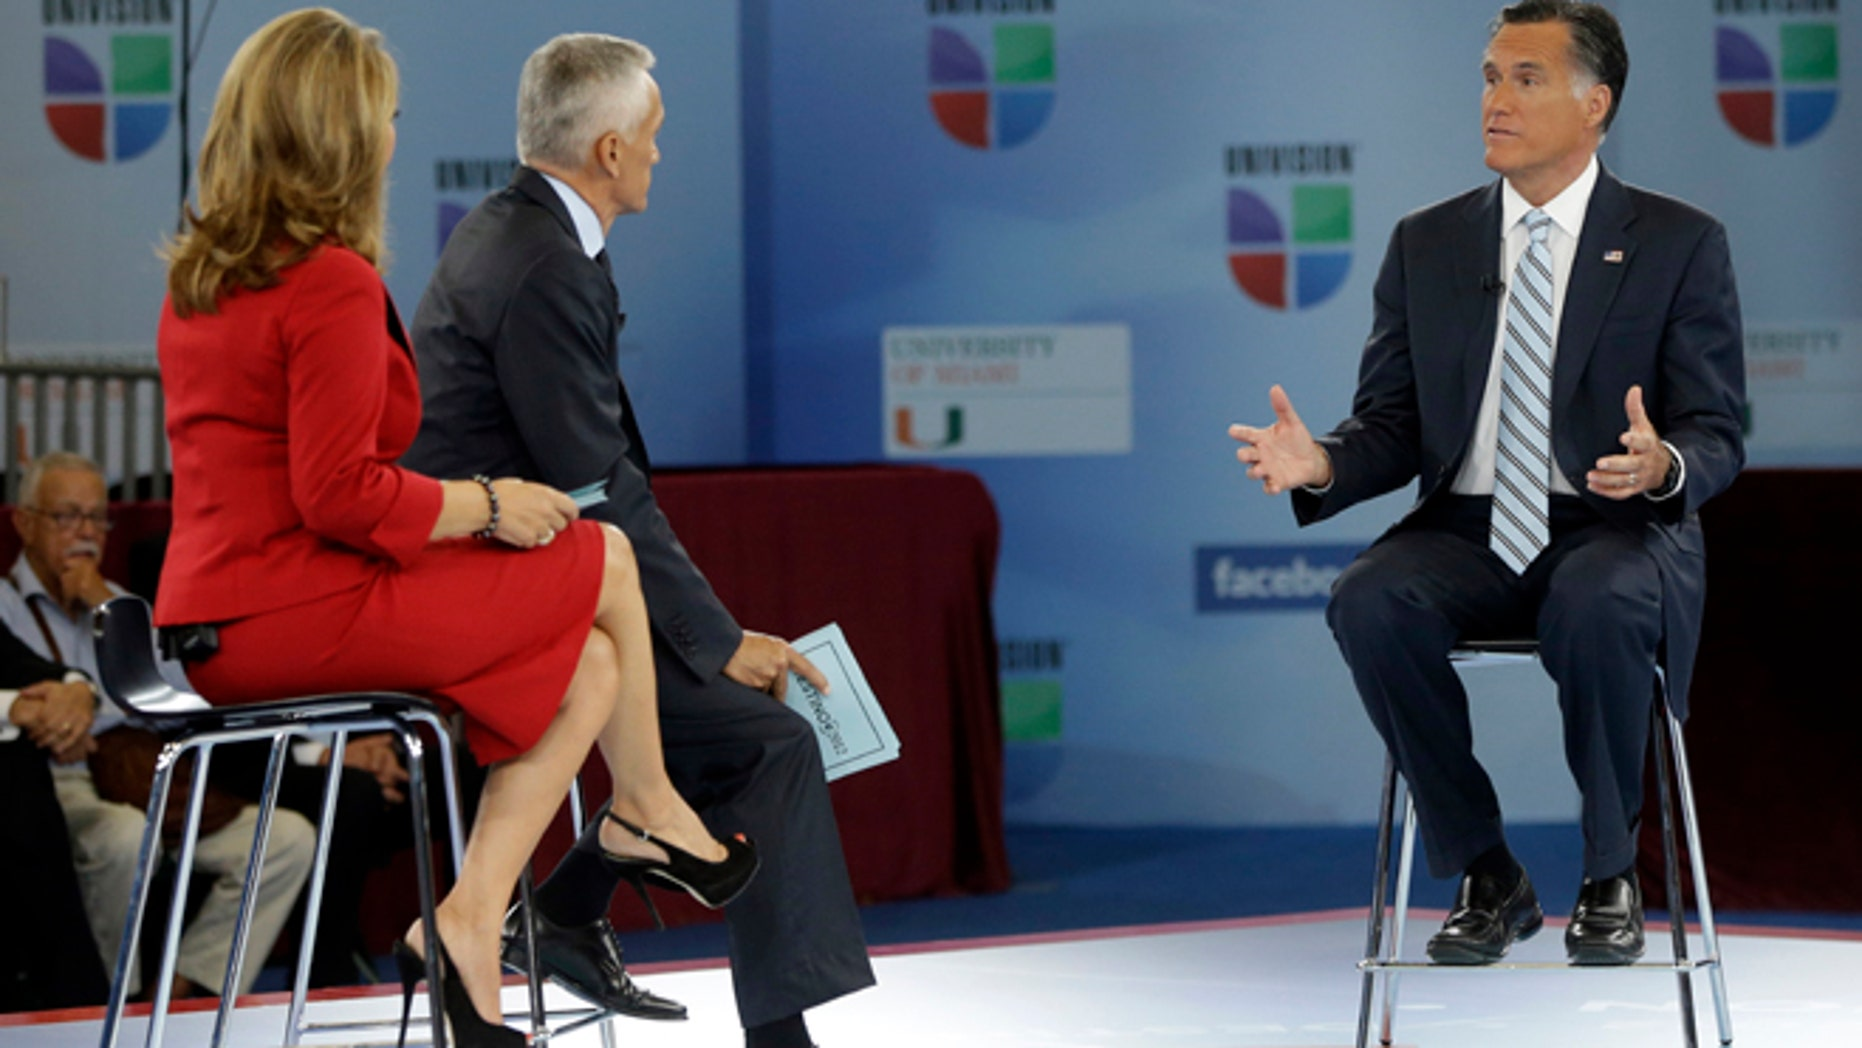 """Republican presidential candidate and former Massachusetts Gov. Mitt Romney participates in a Univision """"Meet the Candidates"""" forum with Jorge Ramos and Maria Elena Salinas in Miami, Wednesday, Sept. 19, 2012.  (AP Photo/Charles Dharapak)"""